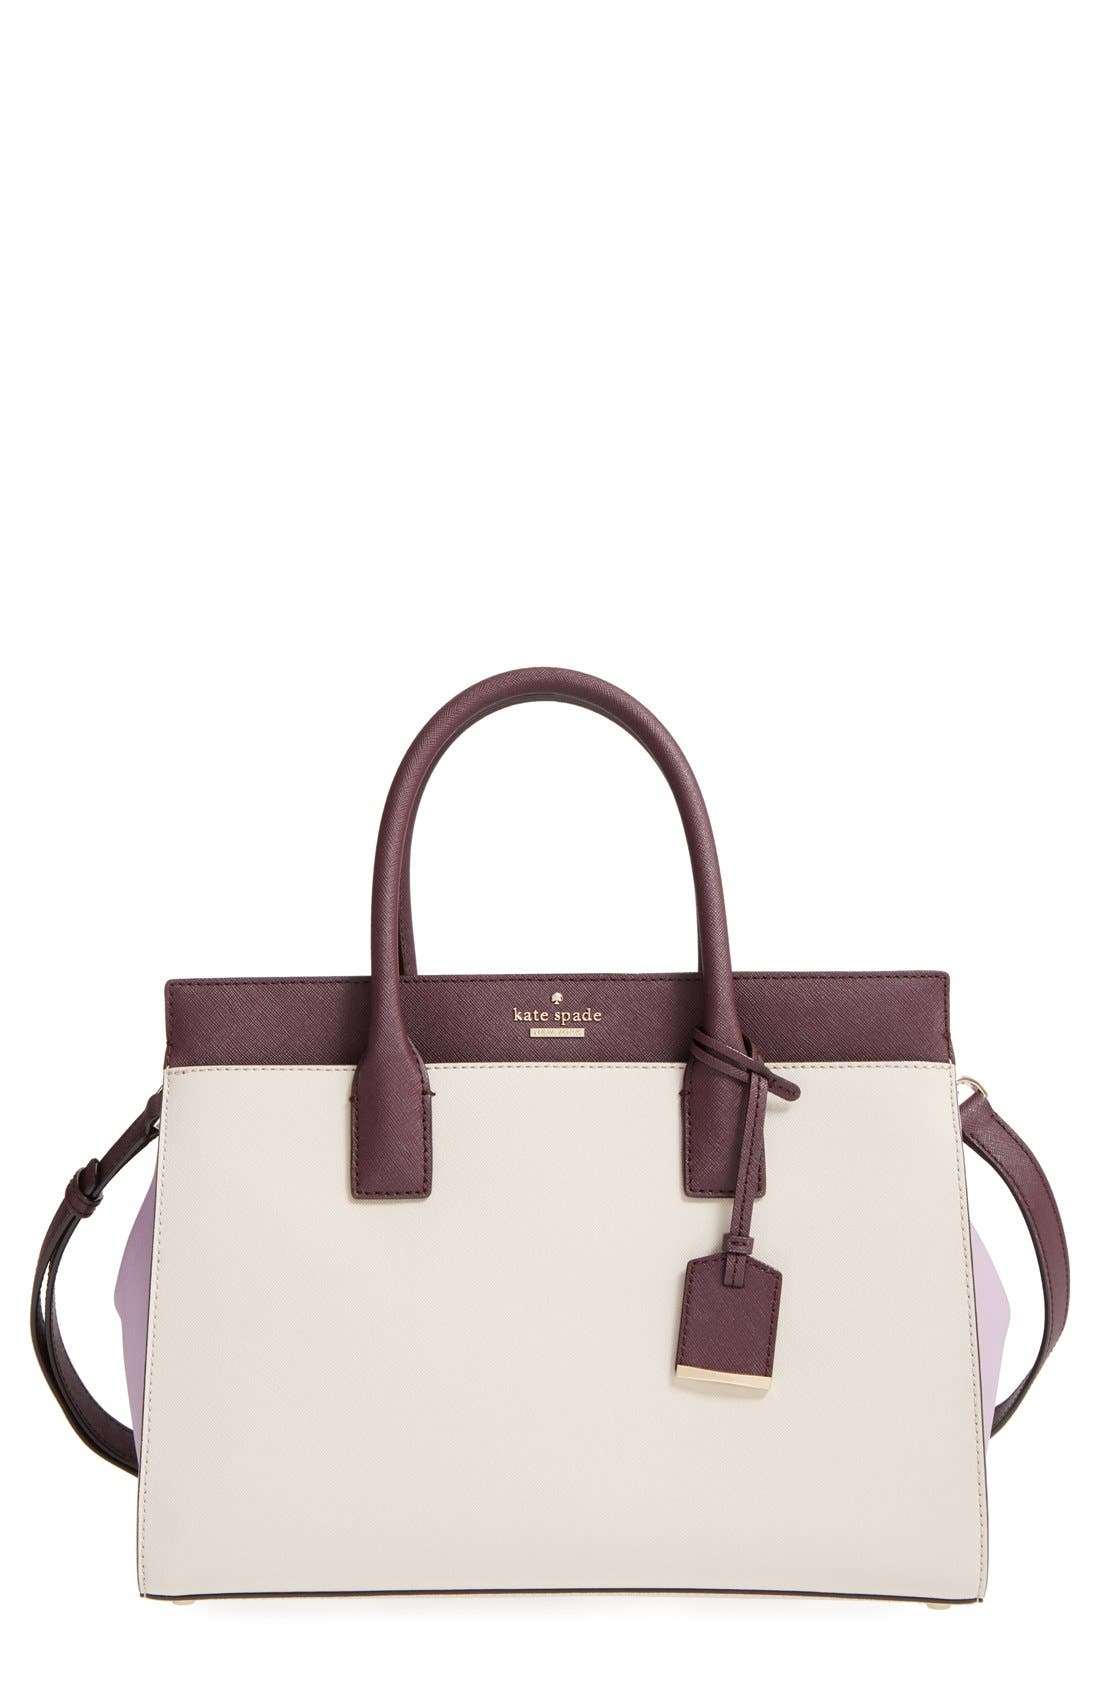 cameron street - candace leather satchel,                             Main thumbnail 23, color,